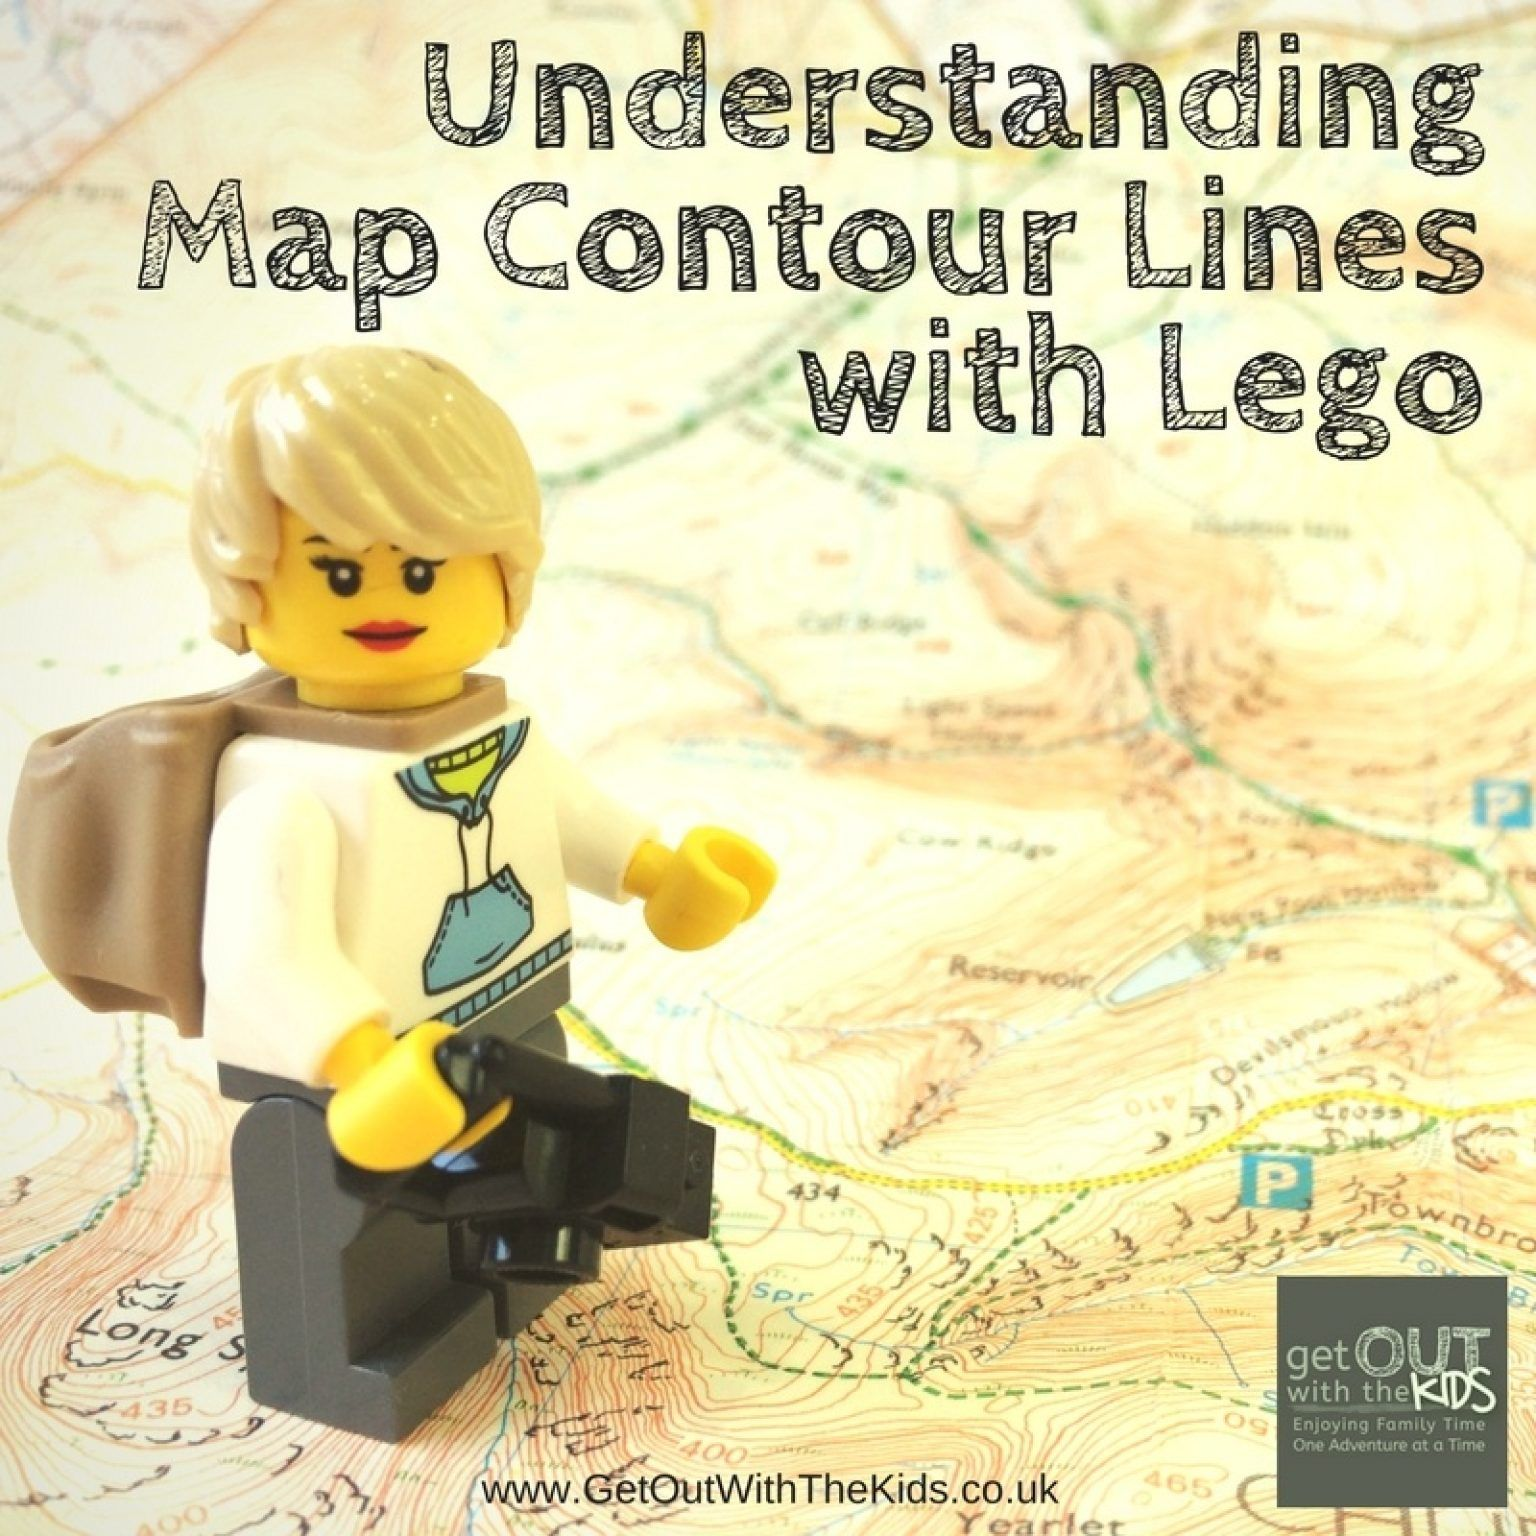 The Family Navigation Challenge In